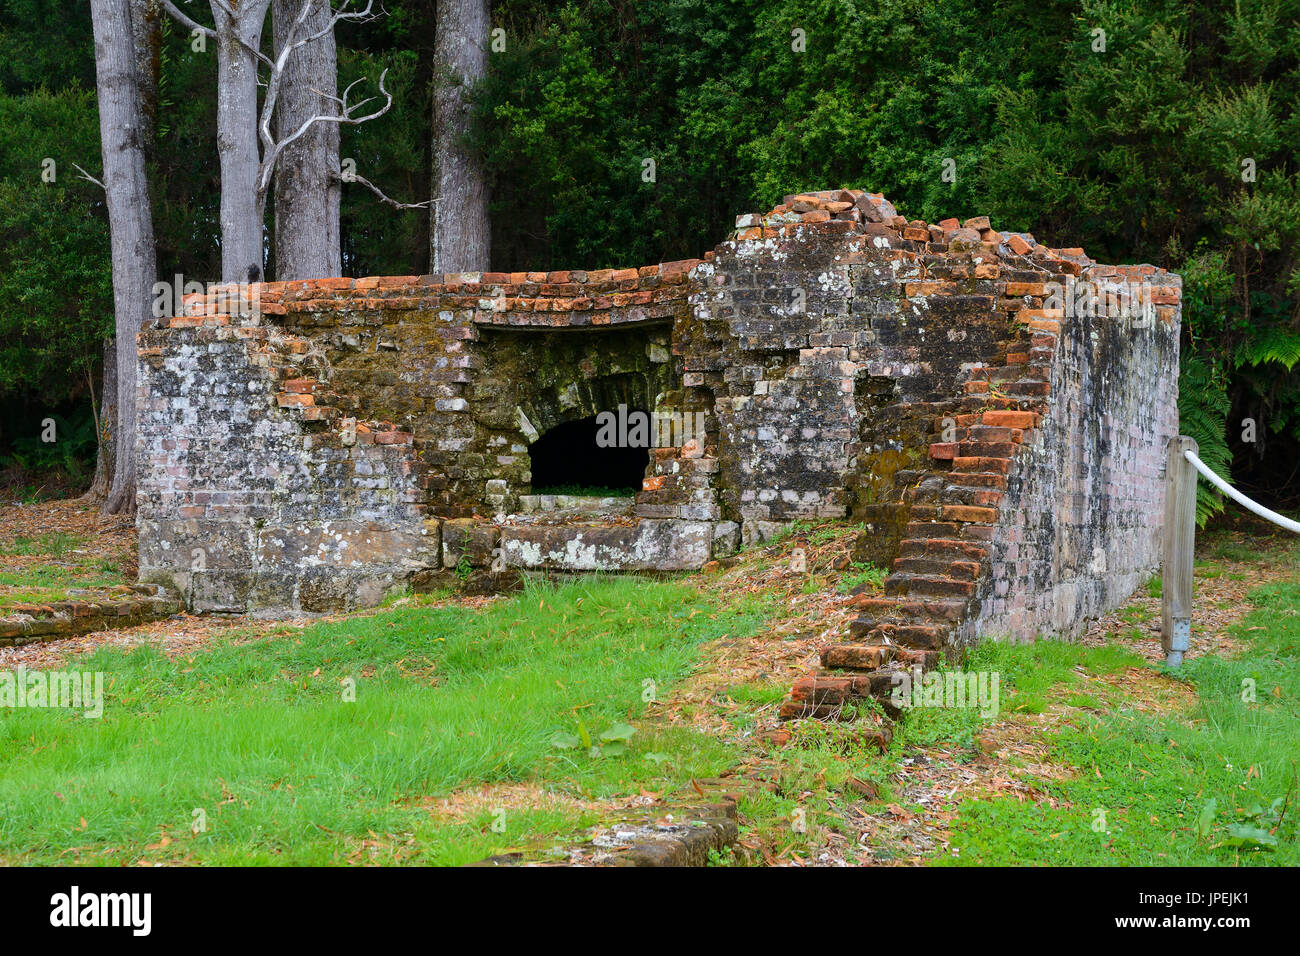 Ruins of Bakehouse at Sarah Island historic site (former convict settlement) on Macquarie Harbour near Strahan in western Tasmania, Australia - Stock Image